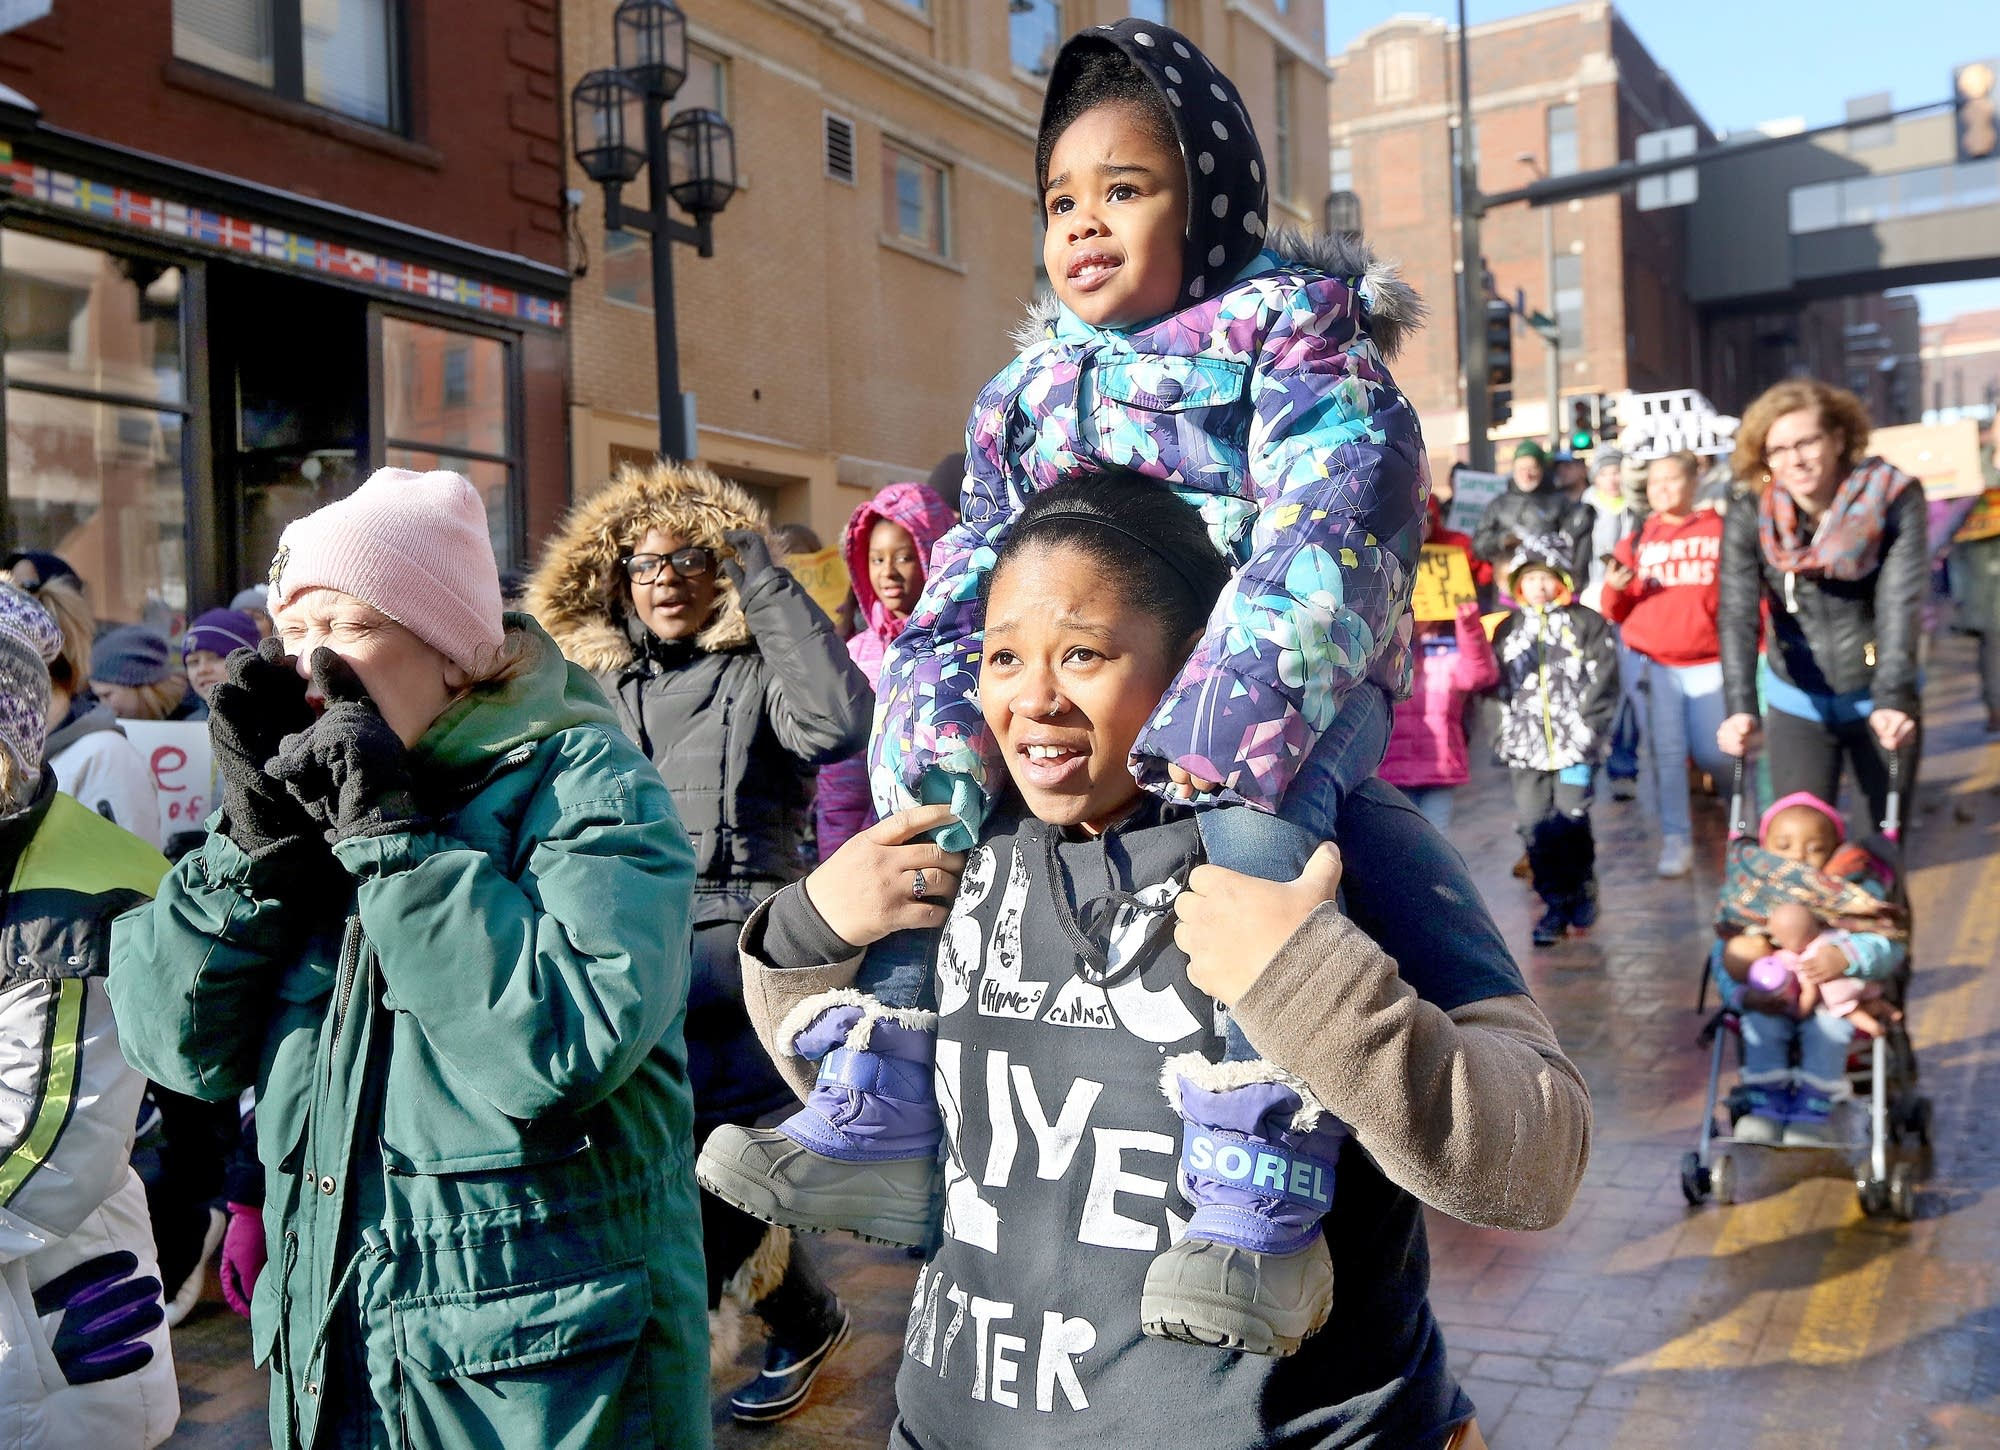 Porcha Shadd of Duluth carries her 3-year-old daughter.